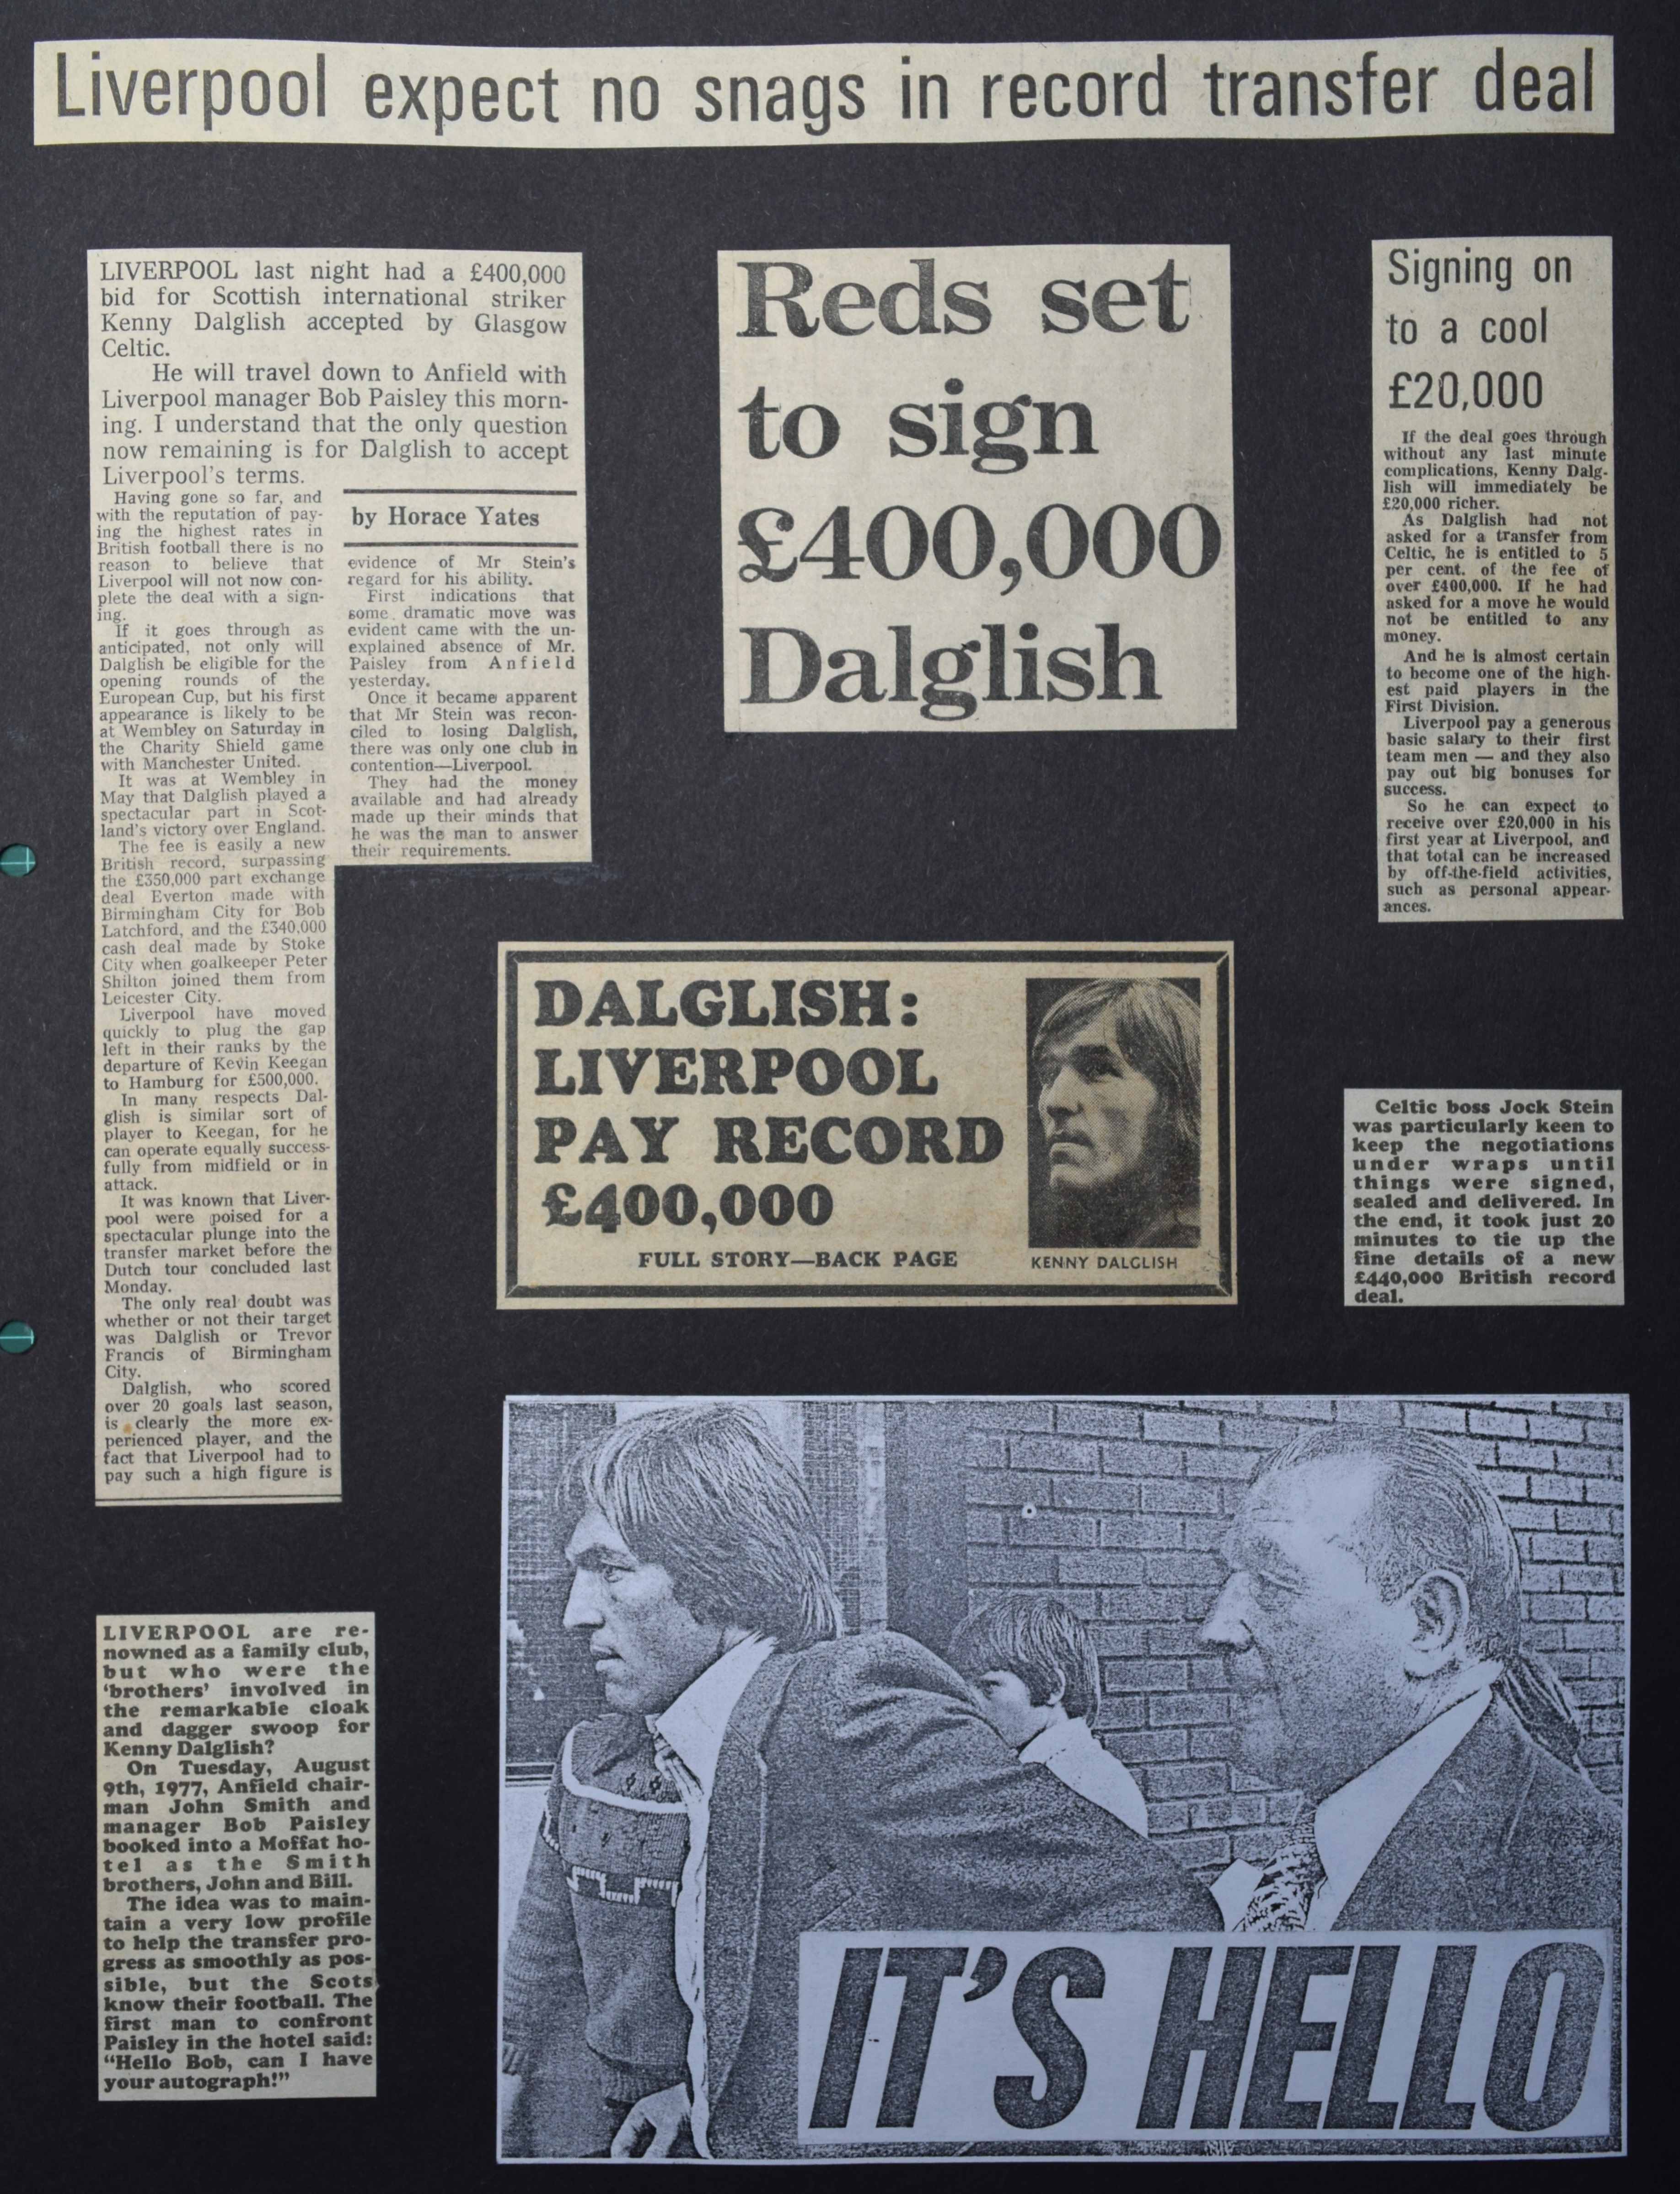 Dalglish set to sign - 9 August 1977